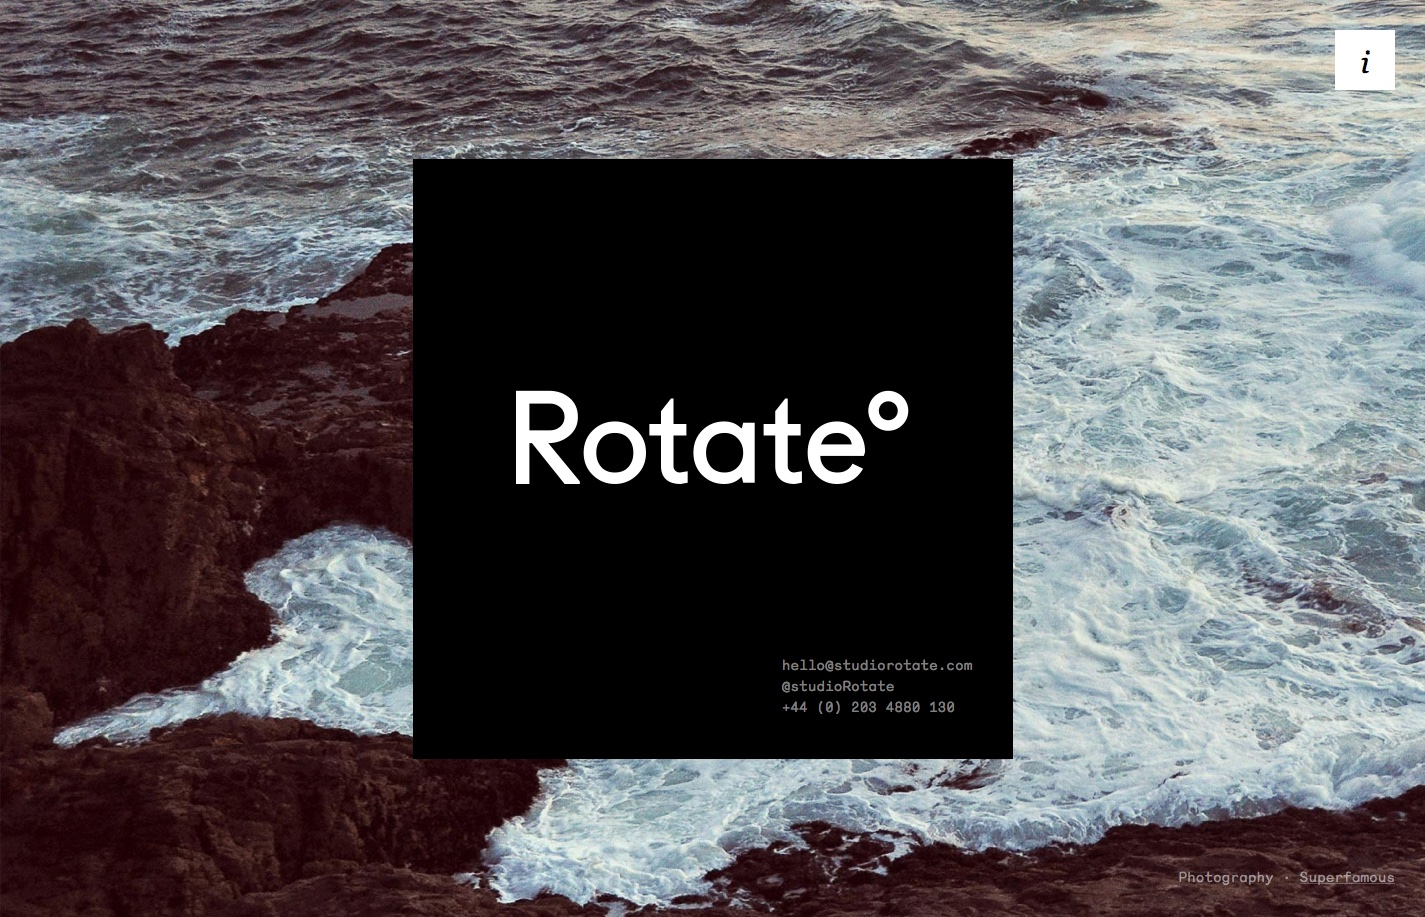 Screenshot of the website Rotate°, featured on The Gallery, a curated collection of minimal websites